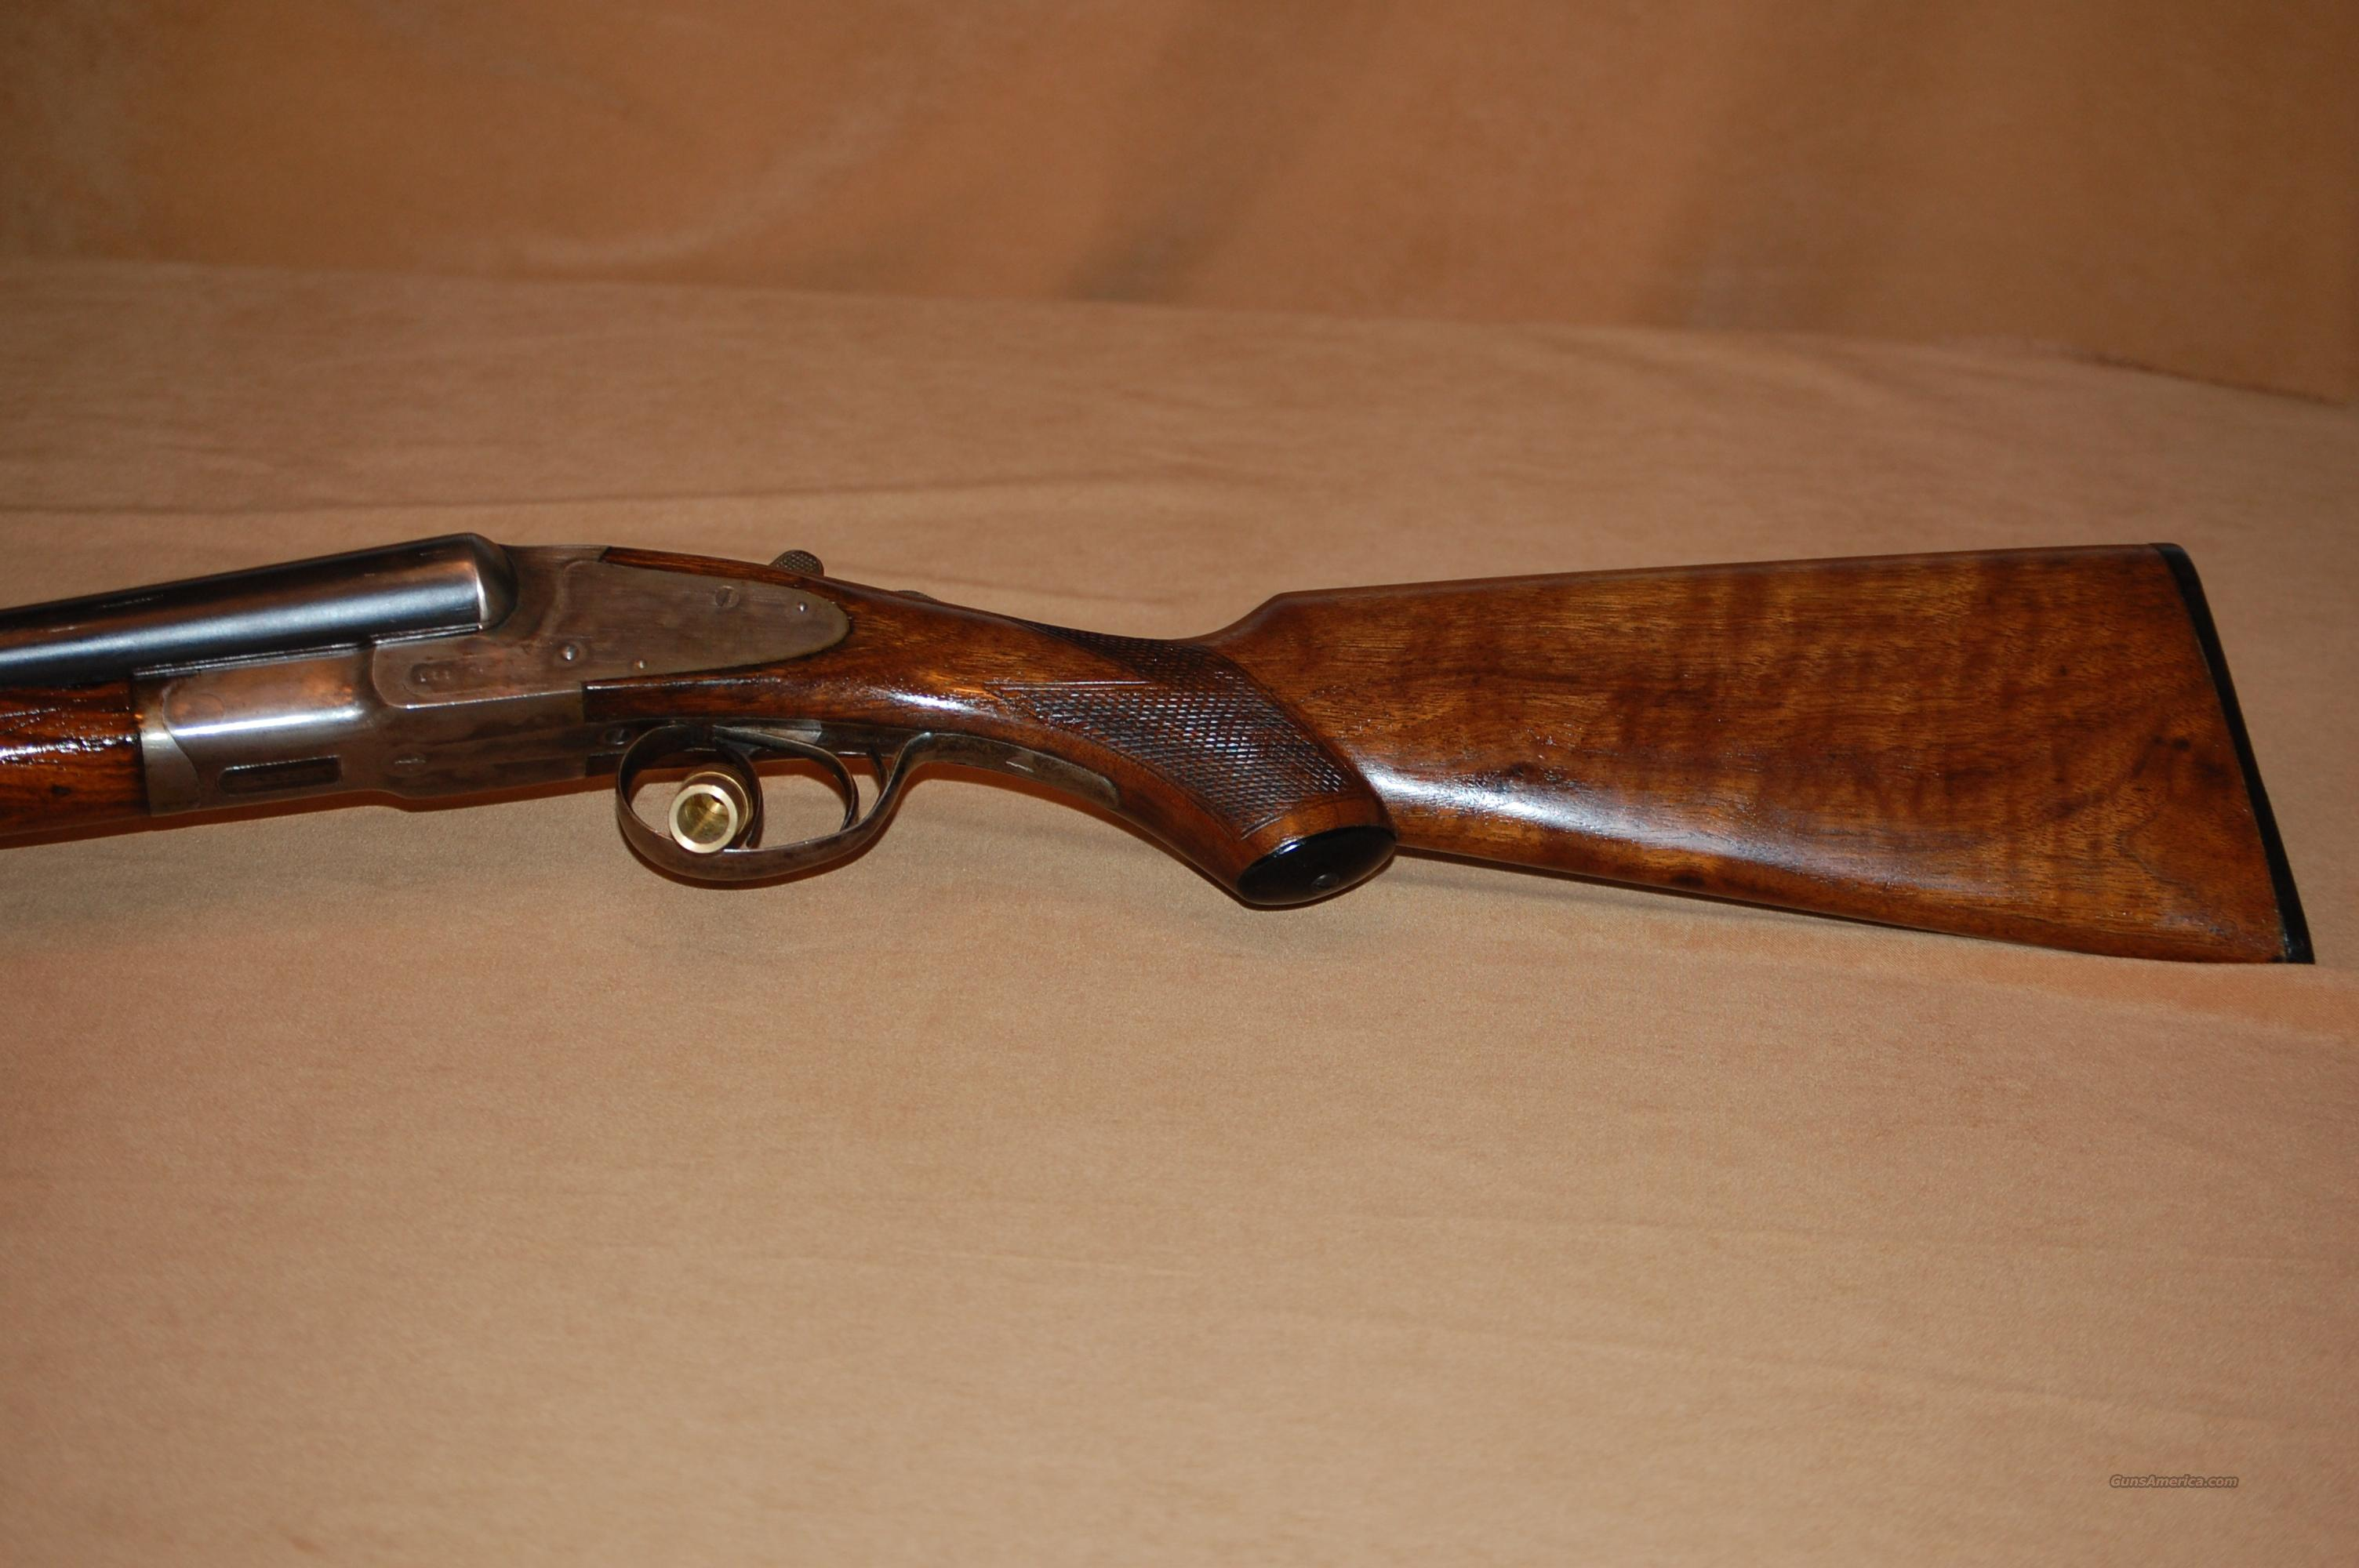 LC SMITH WILD FOWL 12 GAUGE  Guns > Shotguns > L.C. Smith Shotguns